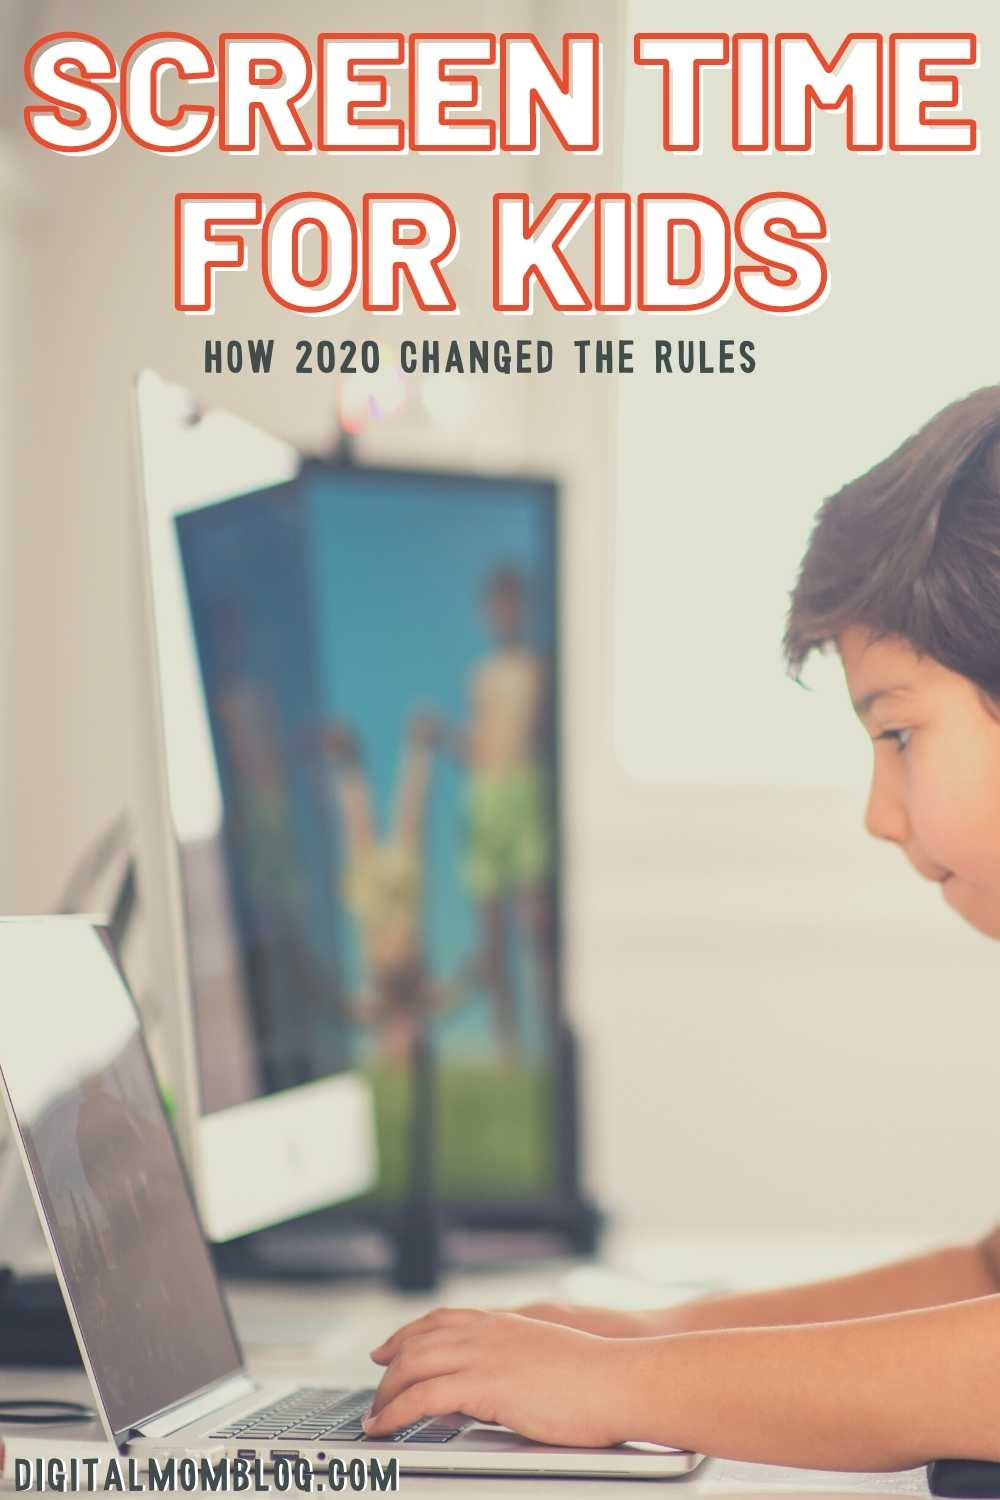 screen time rules for kids in 2020